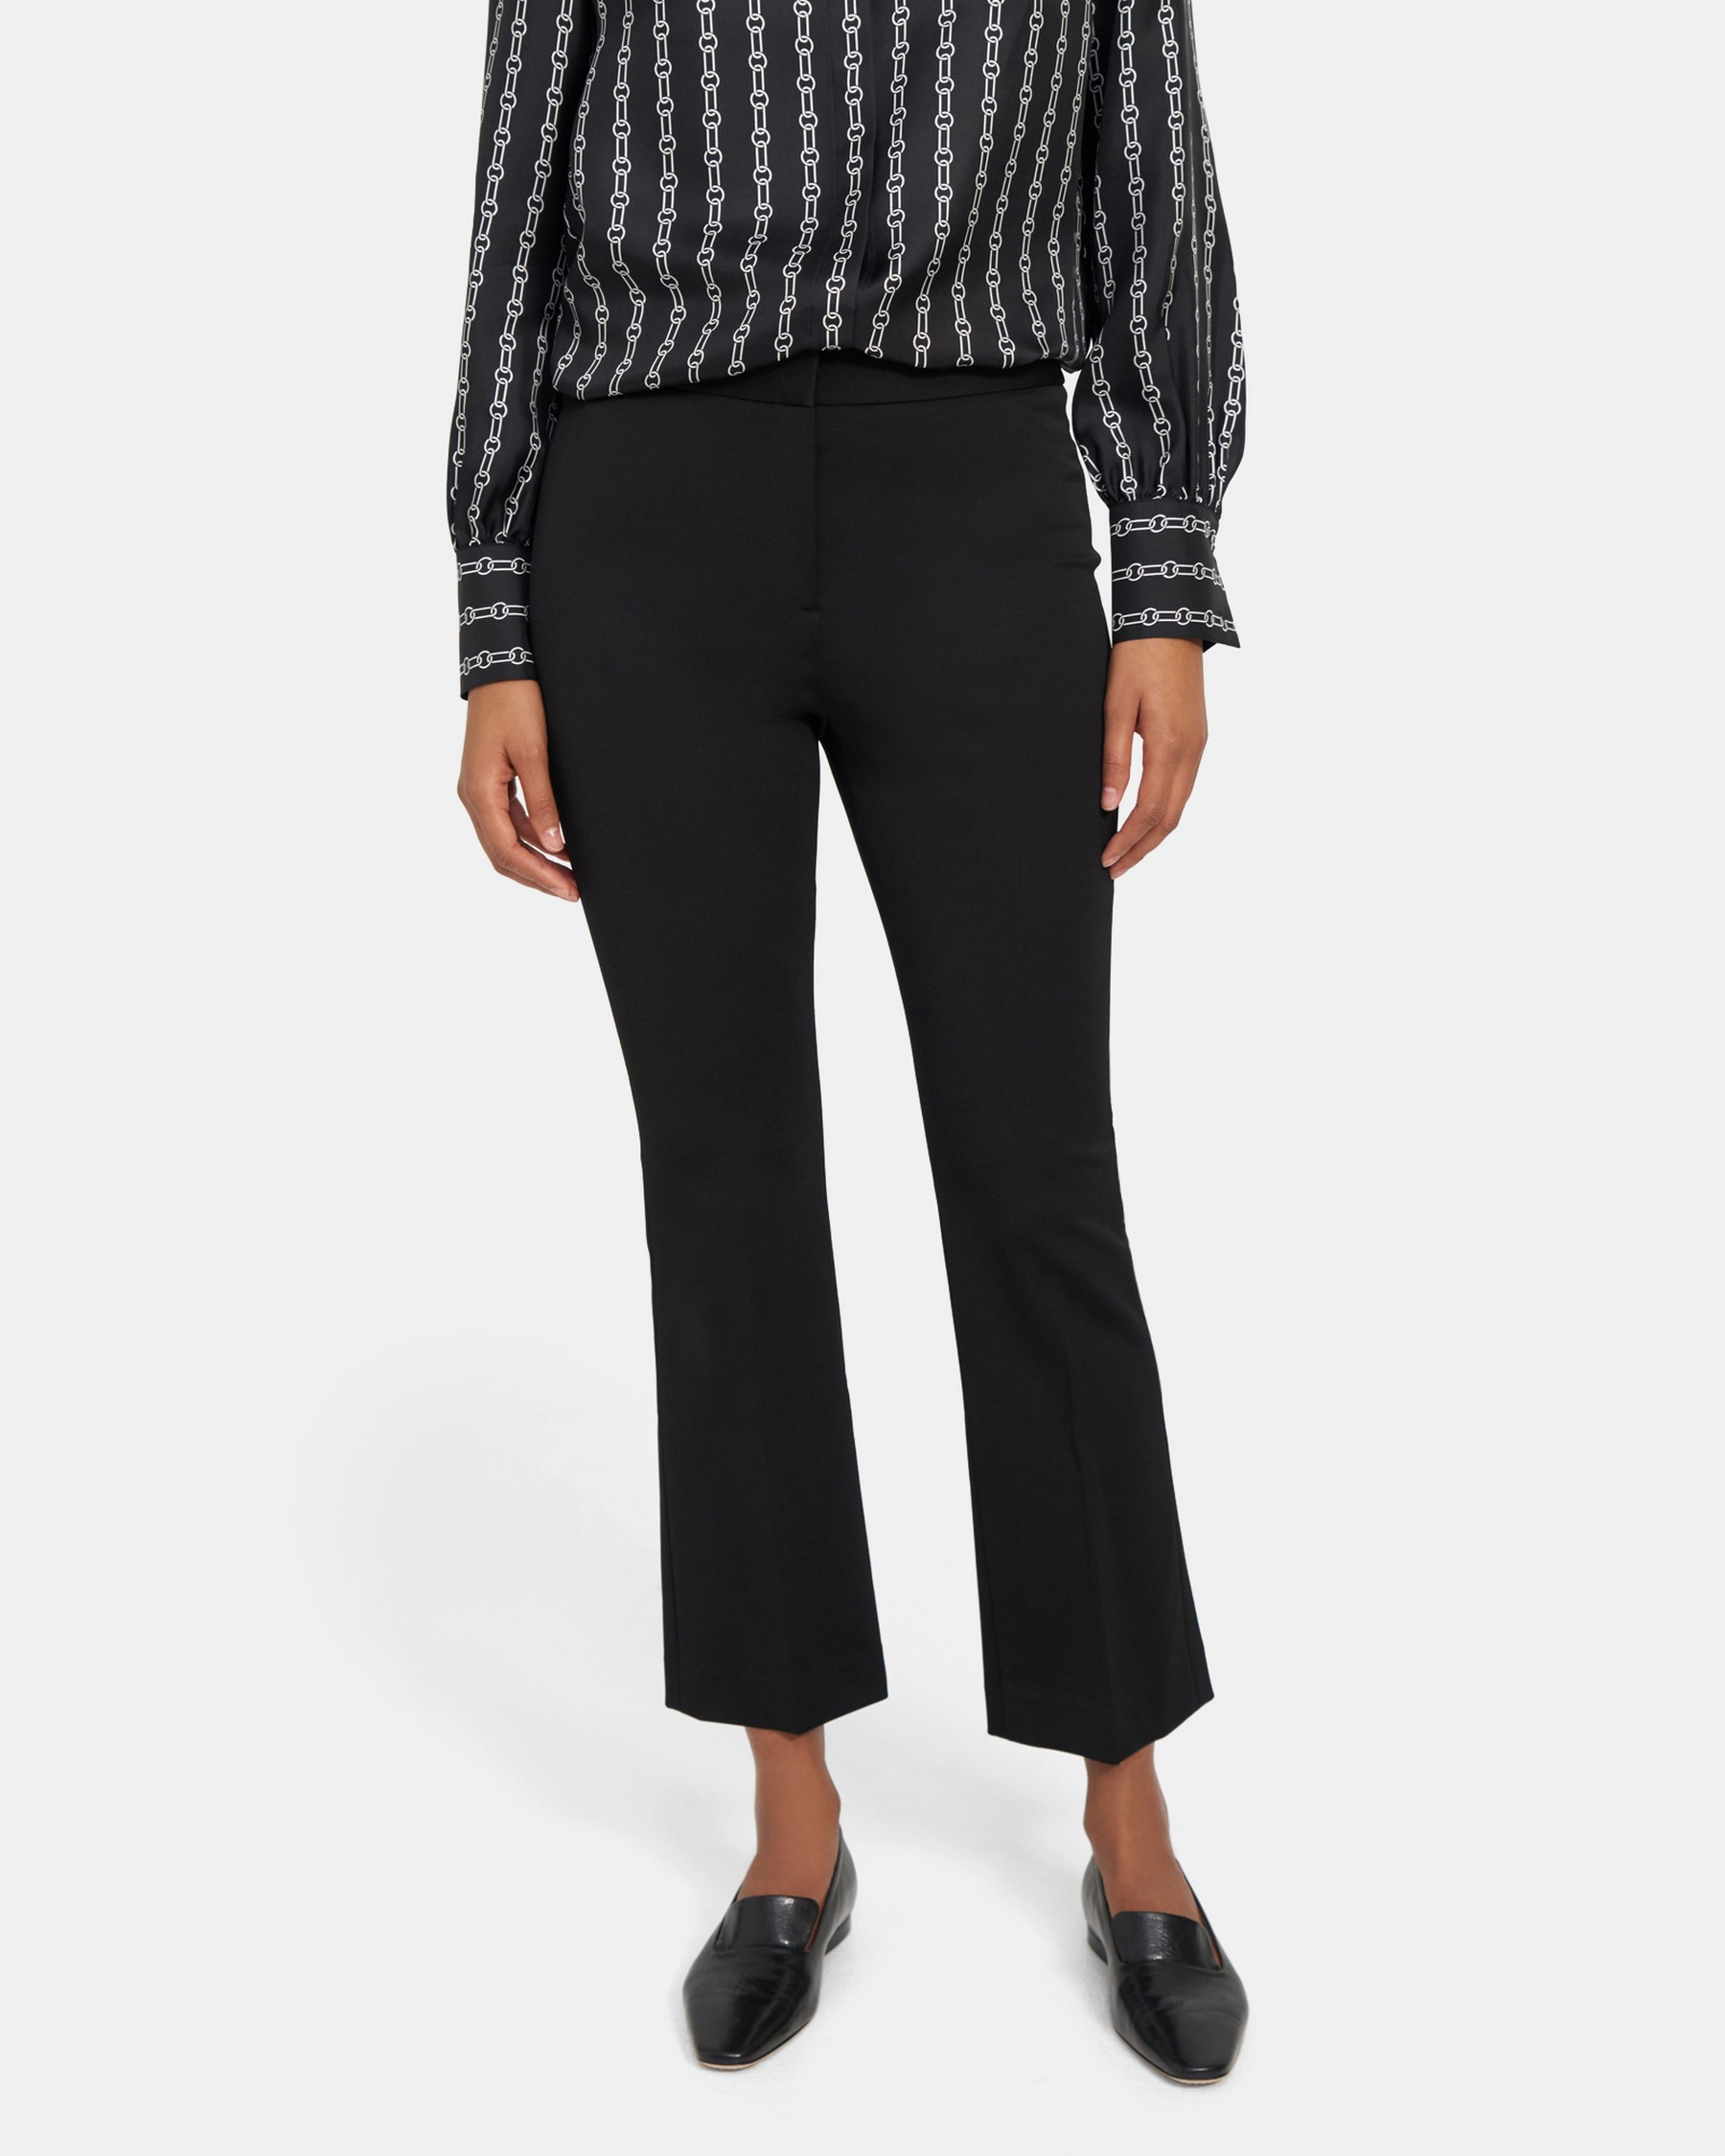 Flared Crop Pant in Stretch Knit   Theory